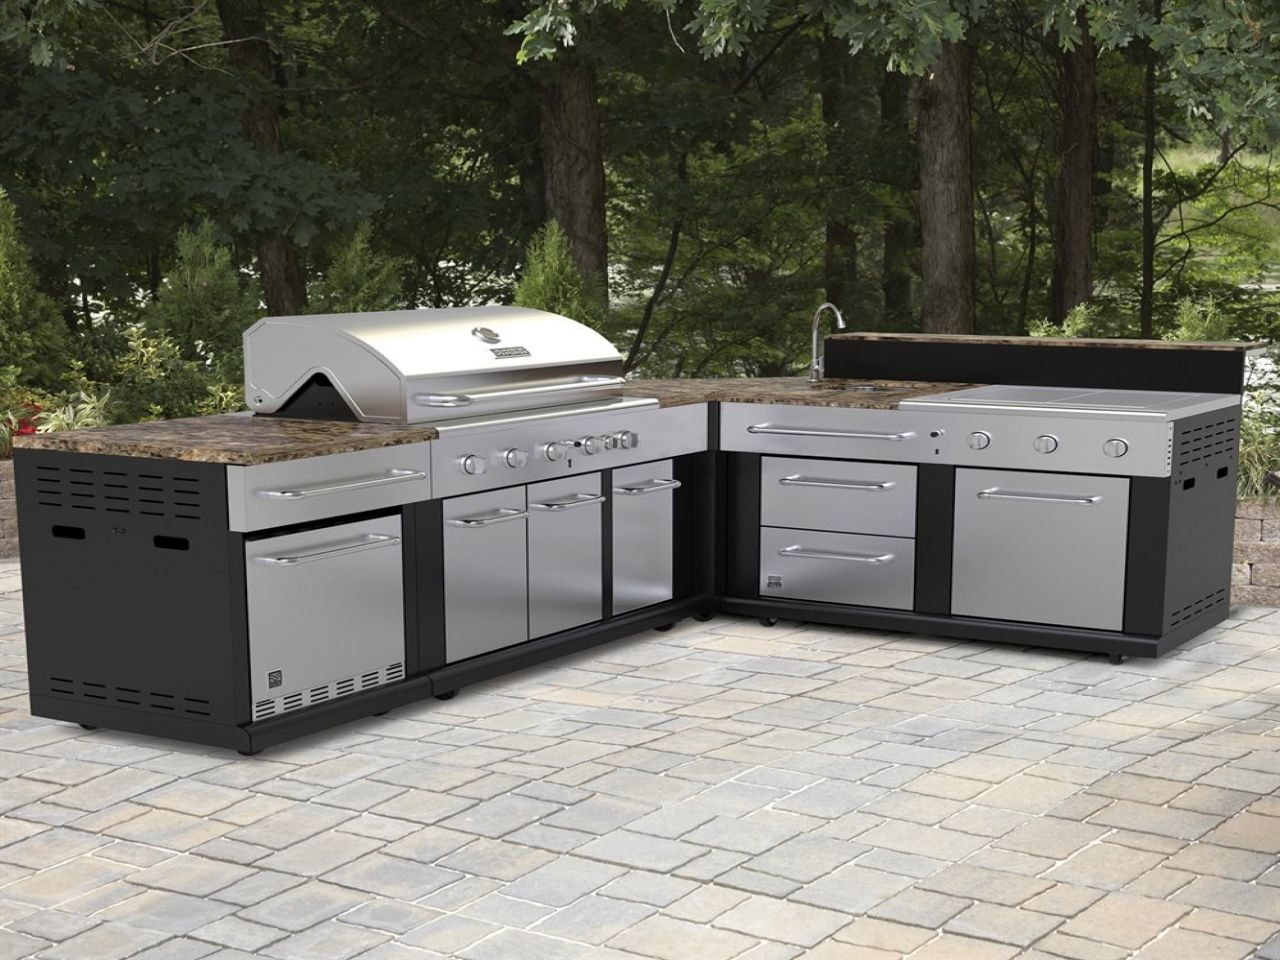 drop in grills for outdoor kitchens diy refinish kitchen cabinets pellet smoker grill combo homemade smokehouse plans built charcoal and gas with